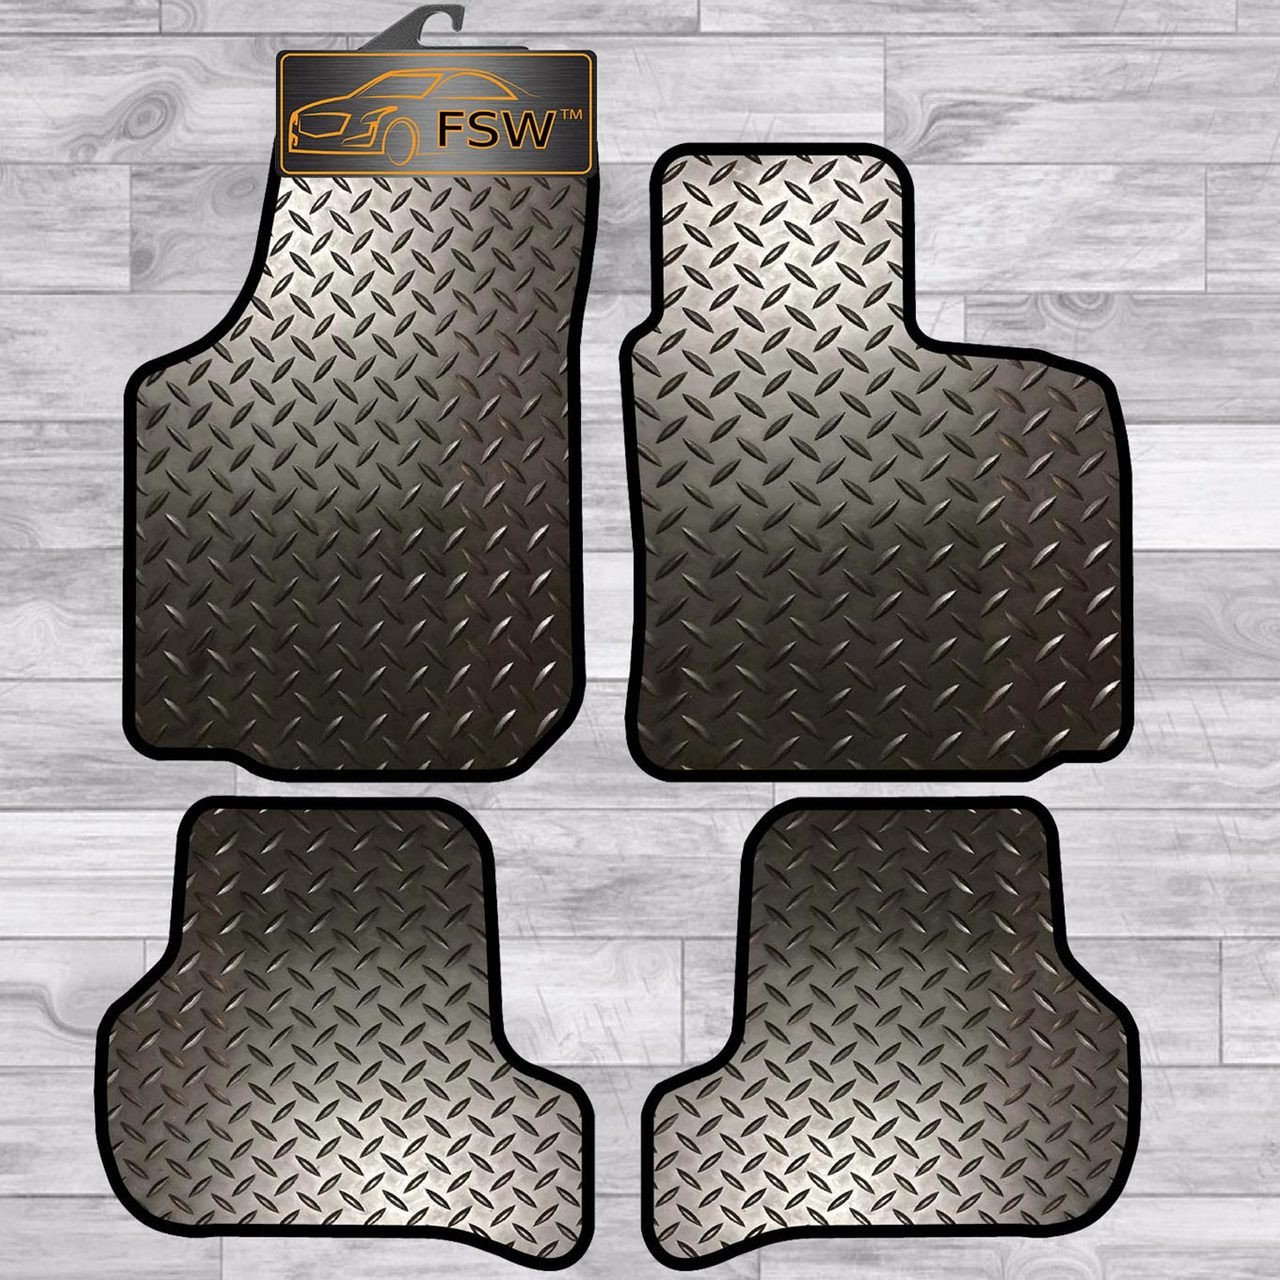 HEAVY DUTY RUBBER CAR FLOOR MAT RENAULT KANGOO 09 on